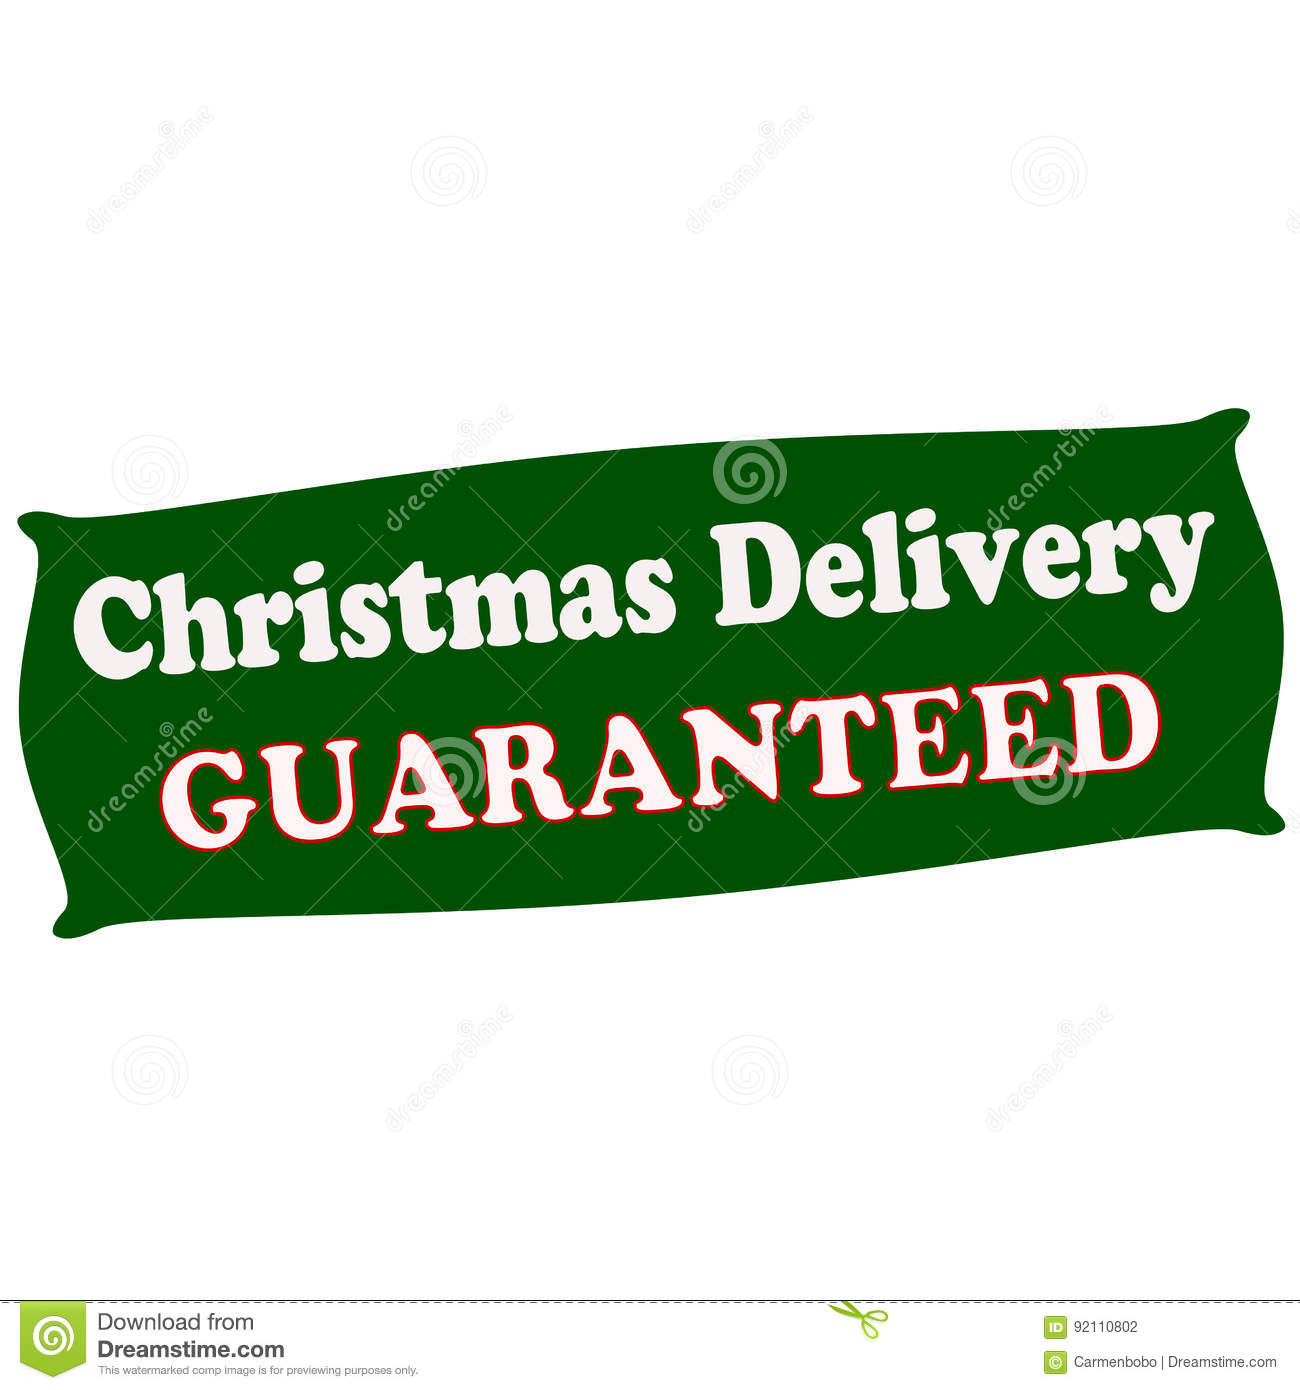 Delivery Christmas Guaranteed Stock Illustration - Image: 92110802